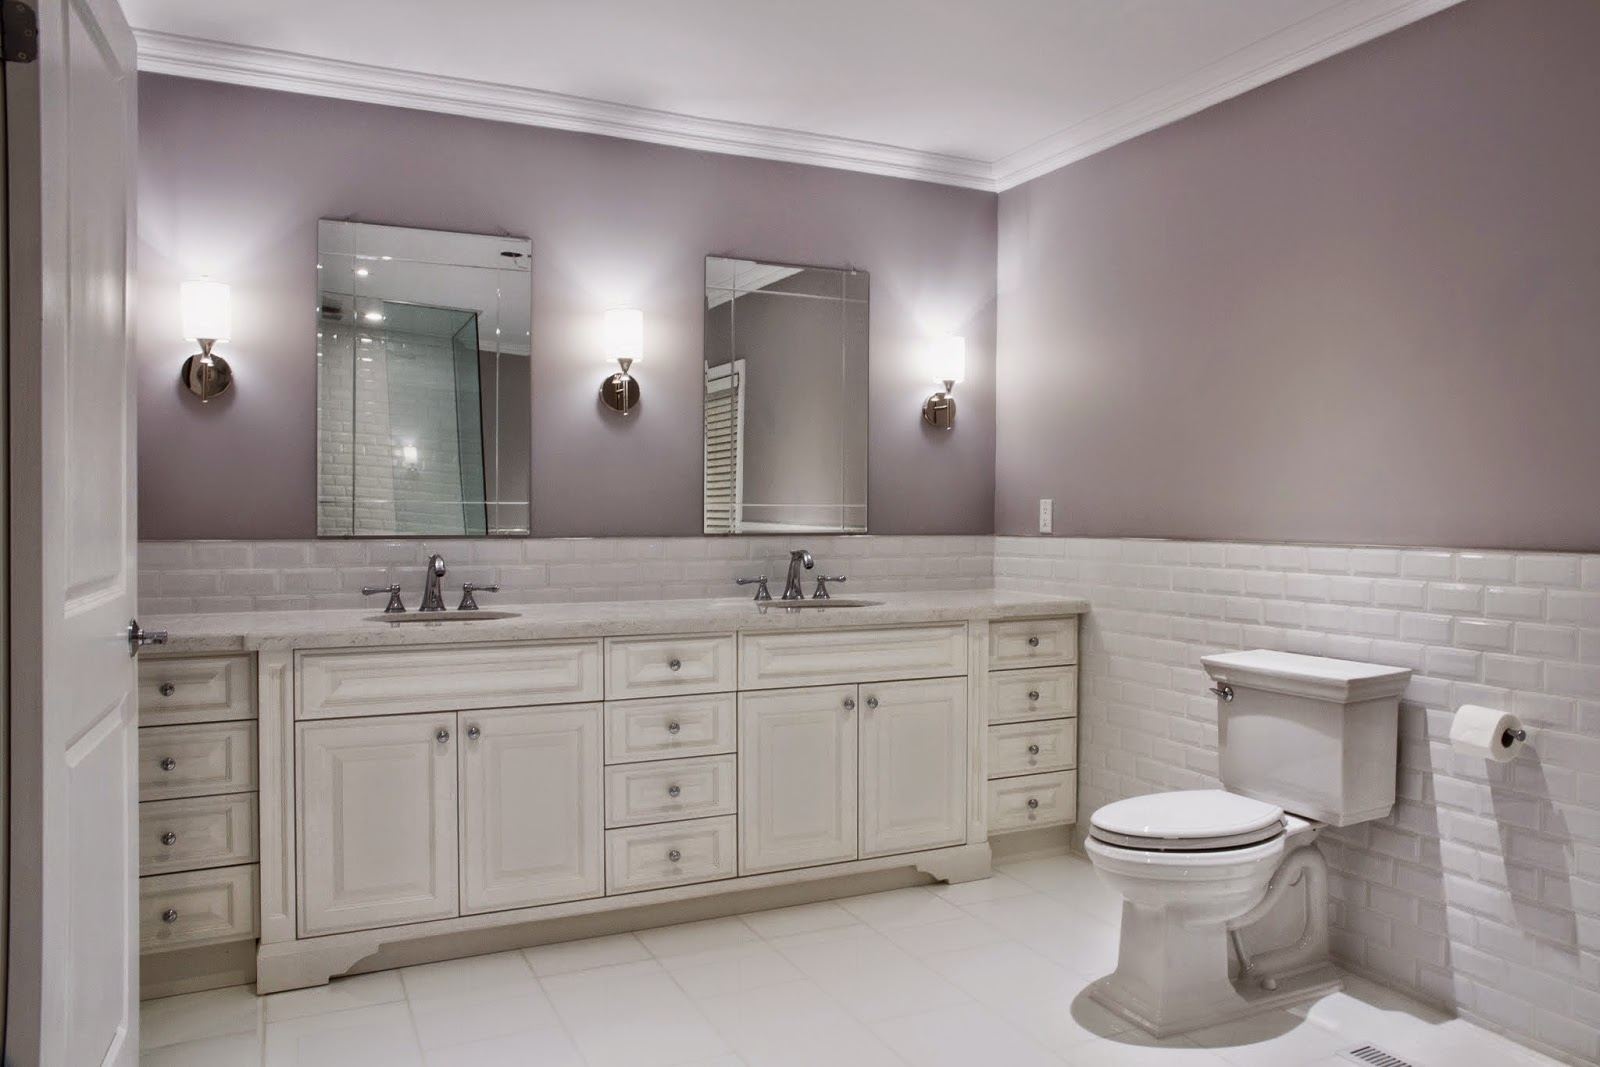 Benjamin Moore Cement Grey Used In Both Master Bedroom And Bathroom But The Color Ears Diffe With White Yellow Lighting